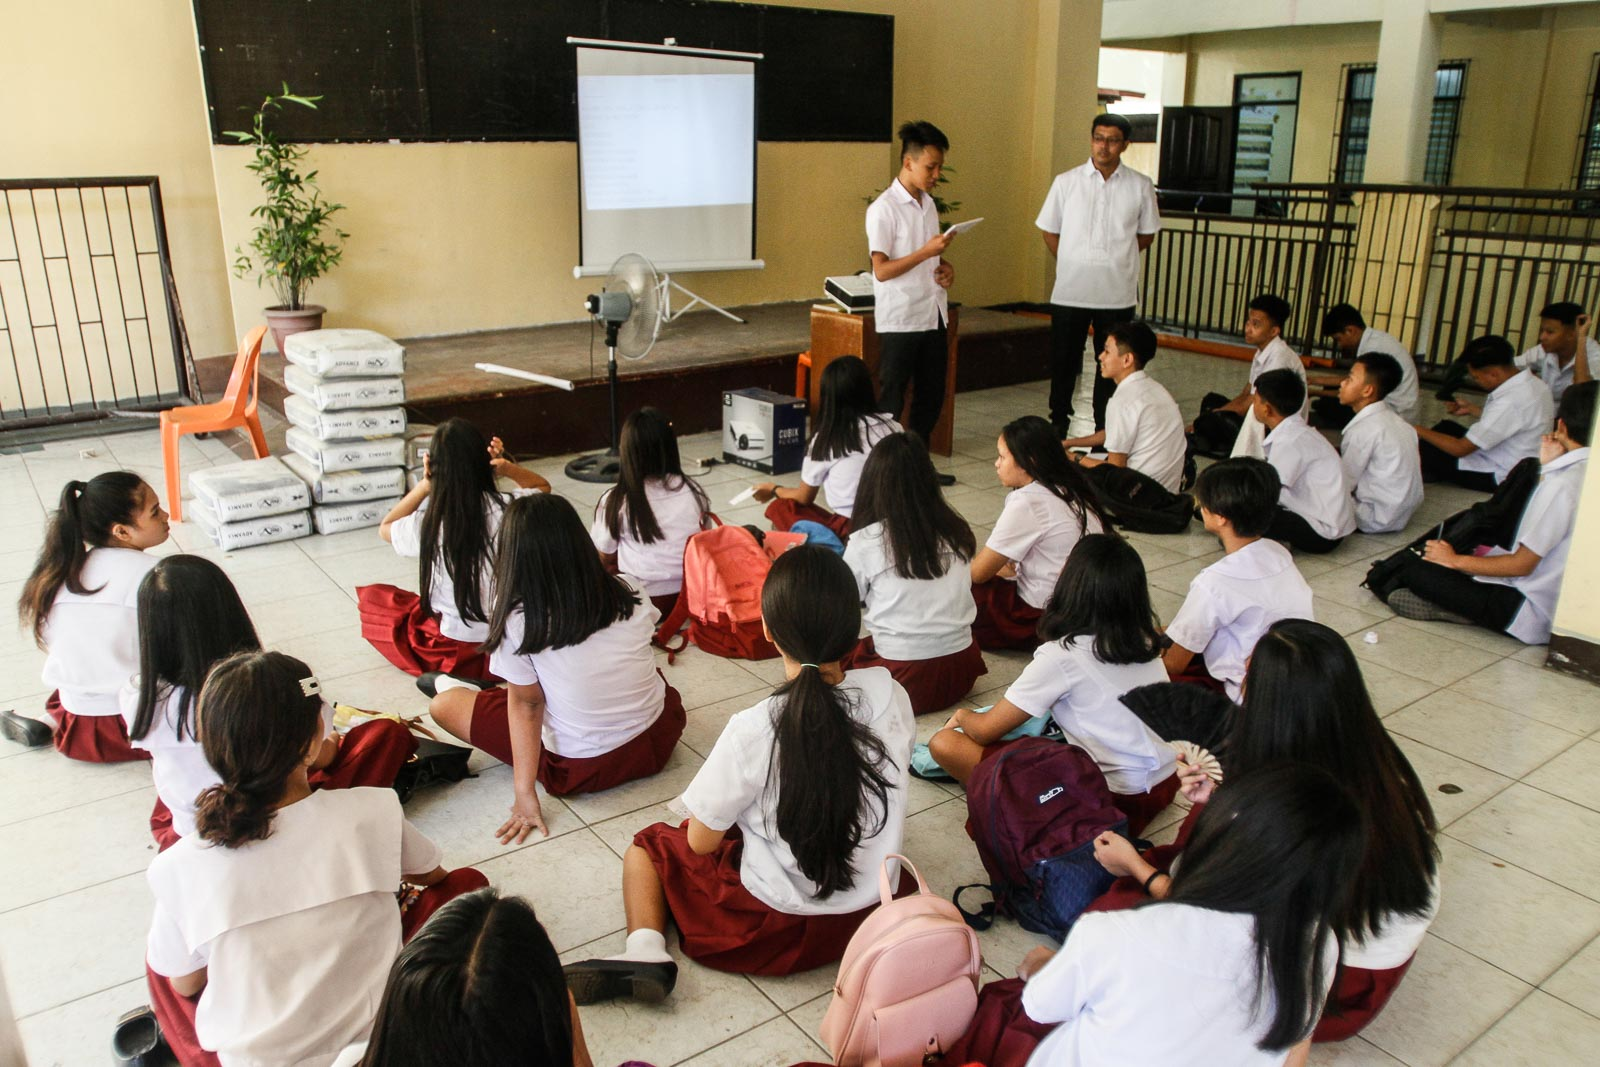 LACKING. Some students of Araullo High School in Manila have to sit on the floor during the first day of classes. Photo by Inoue Jaena/Rappler